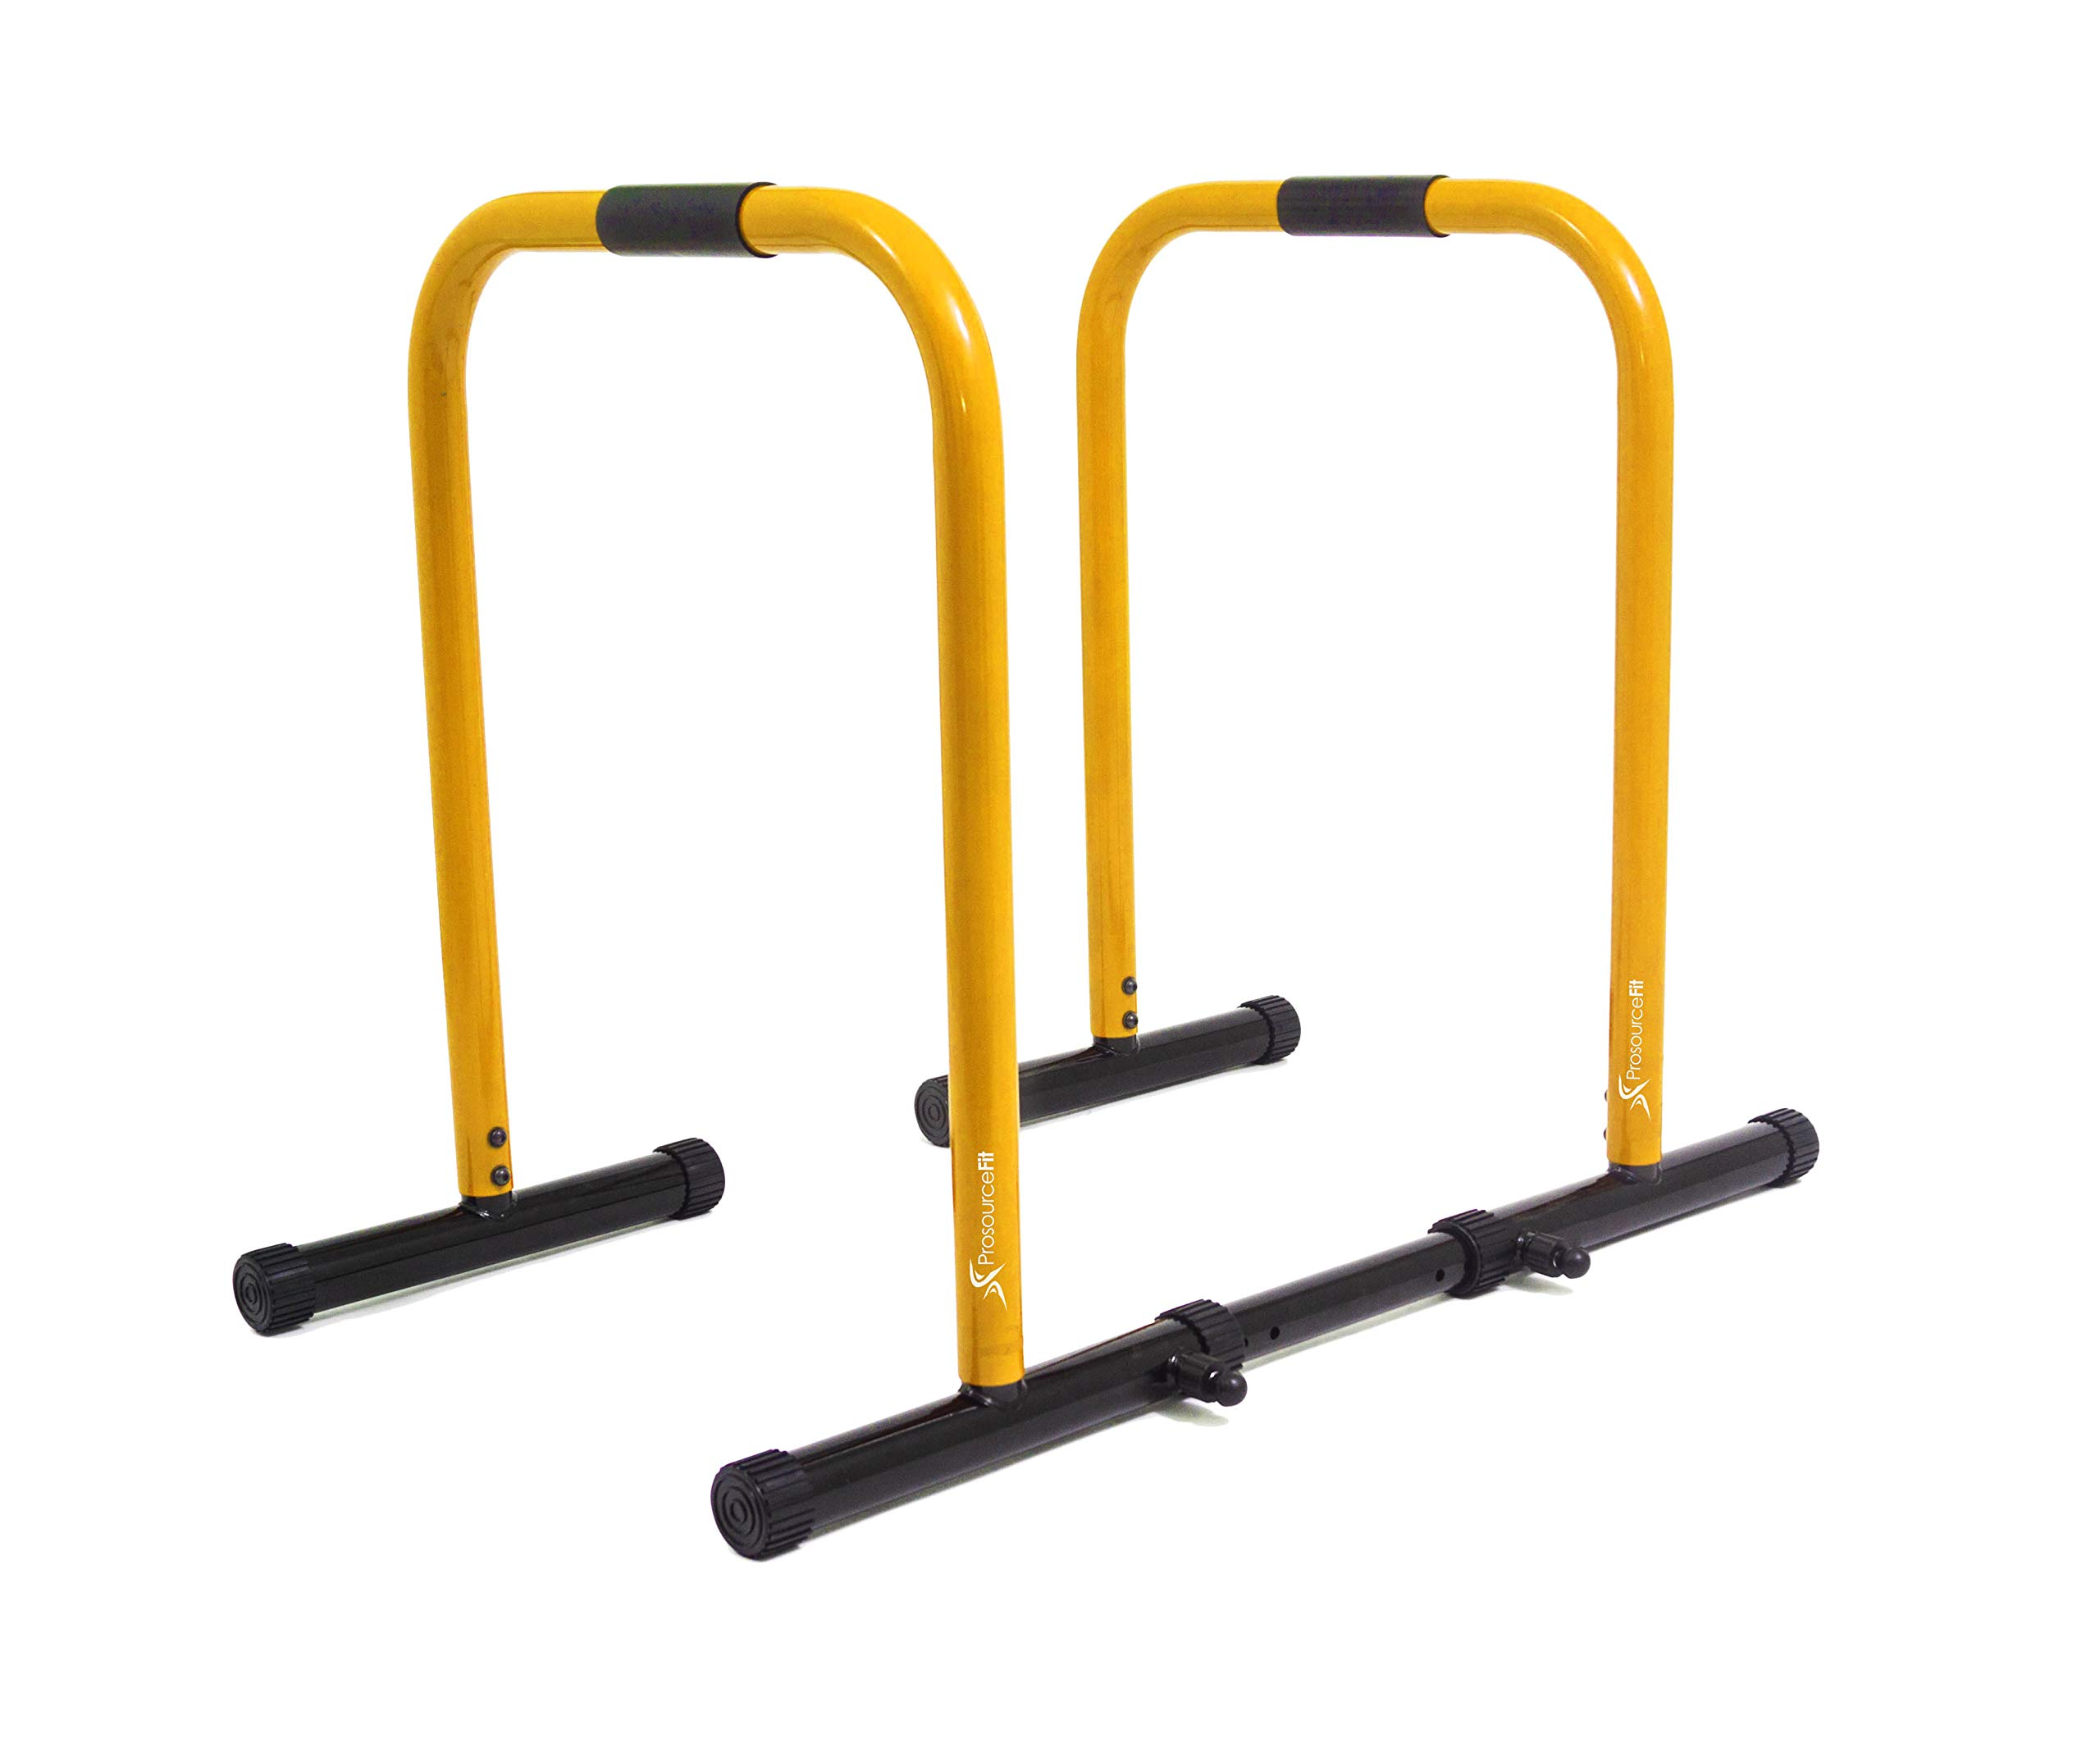 ProsourceFit Dip Stand Station, Heavy Duty Ultimate Body Press Bar with Safety Connector for Tricep Dips, Pull-Ups, Push-Ups, L-Sits, Yellow